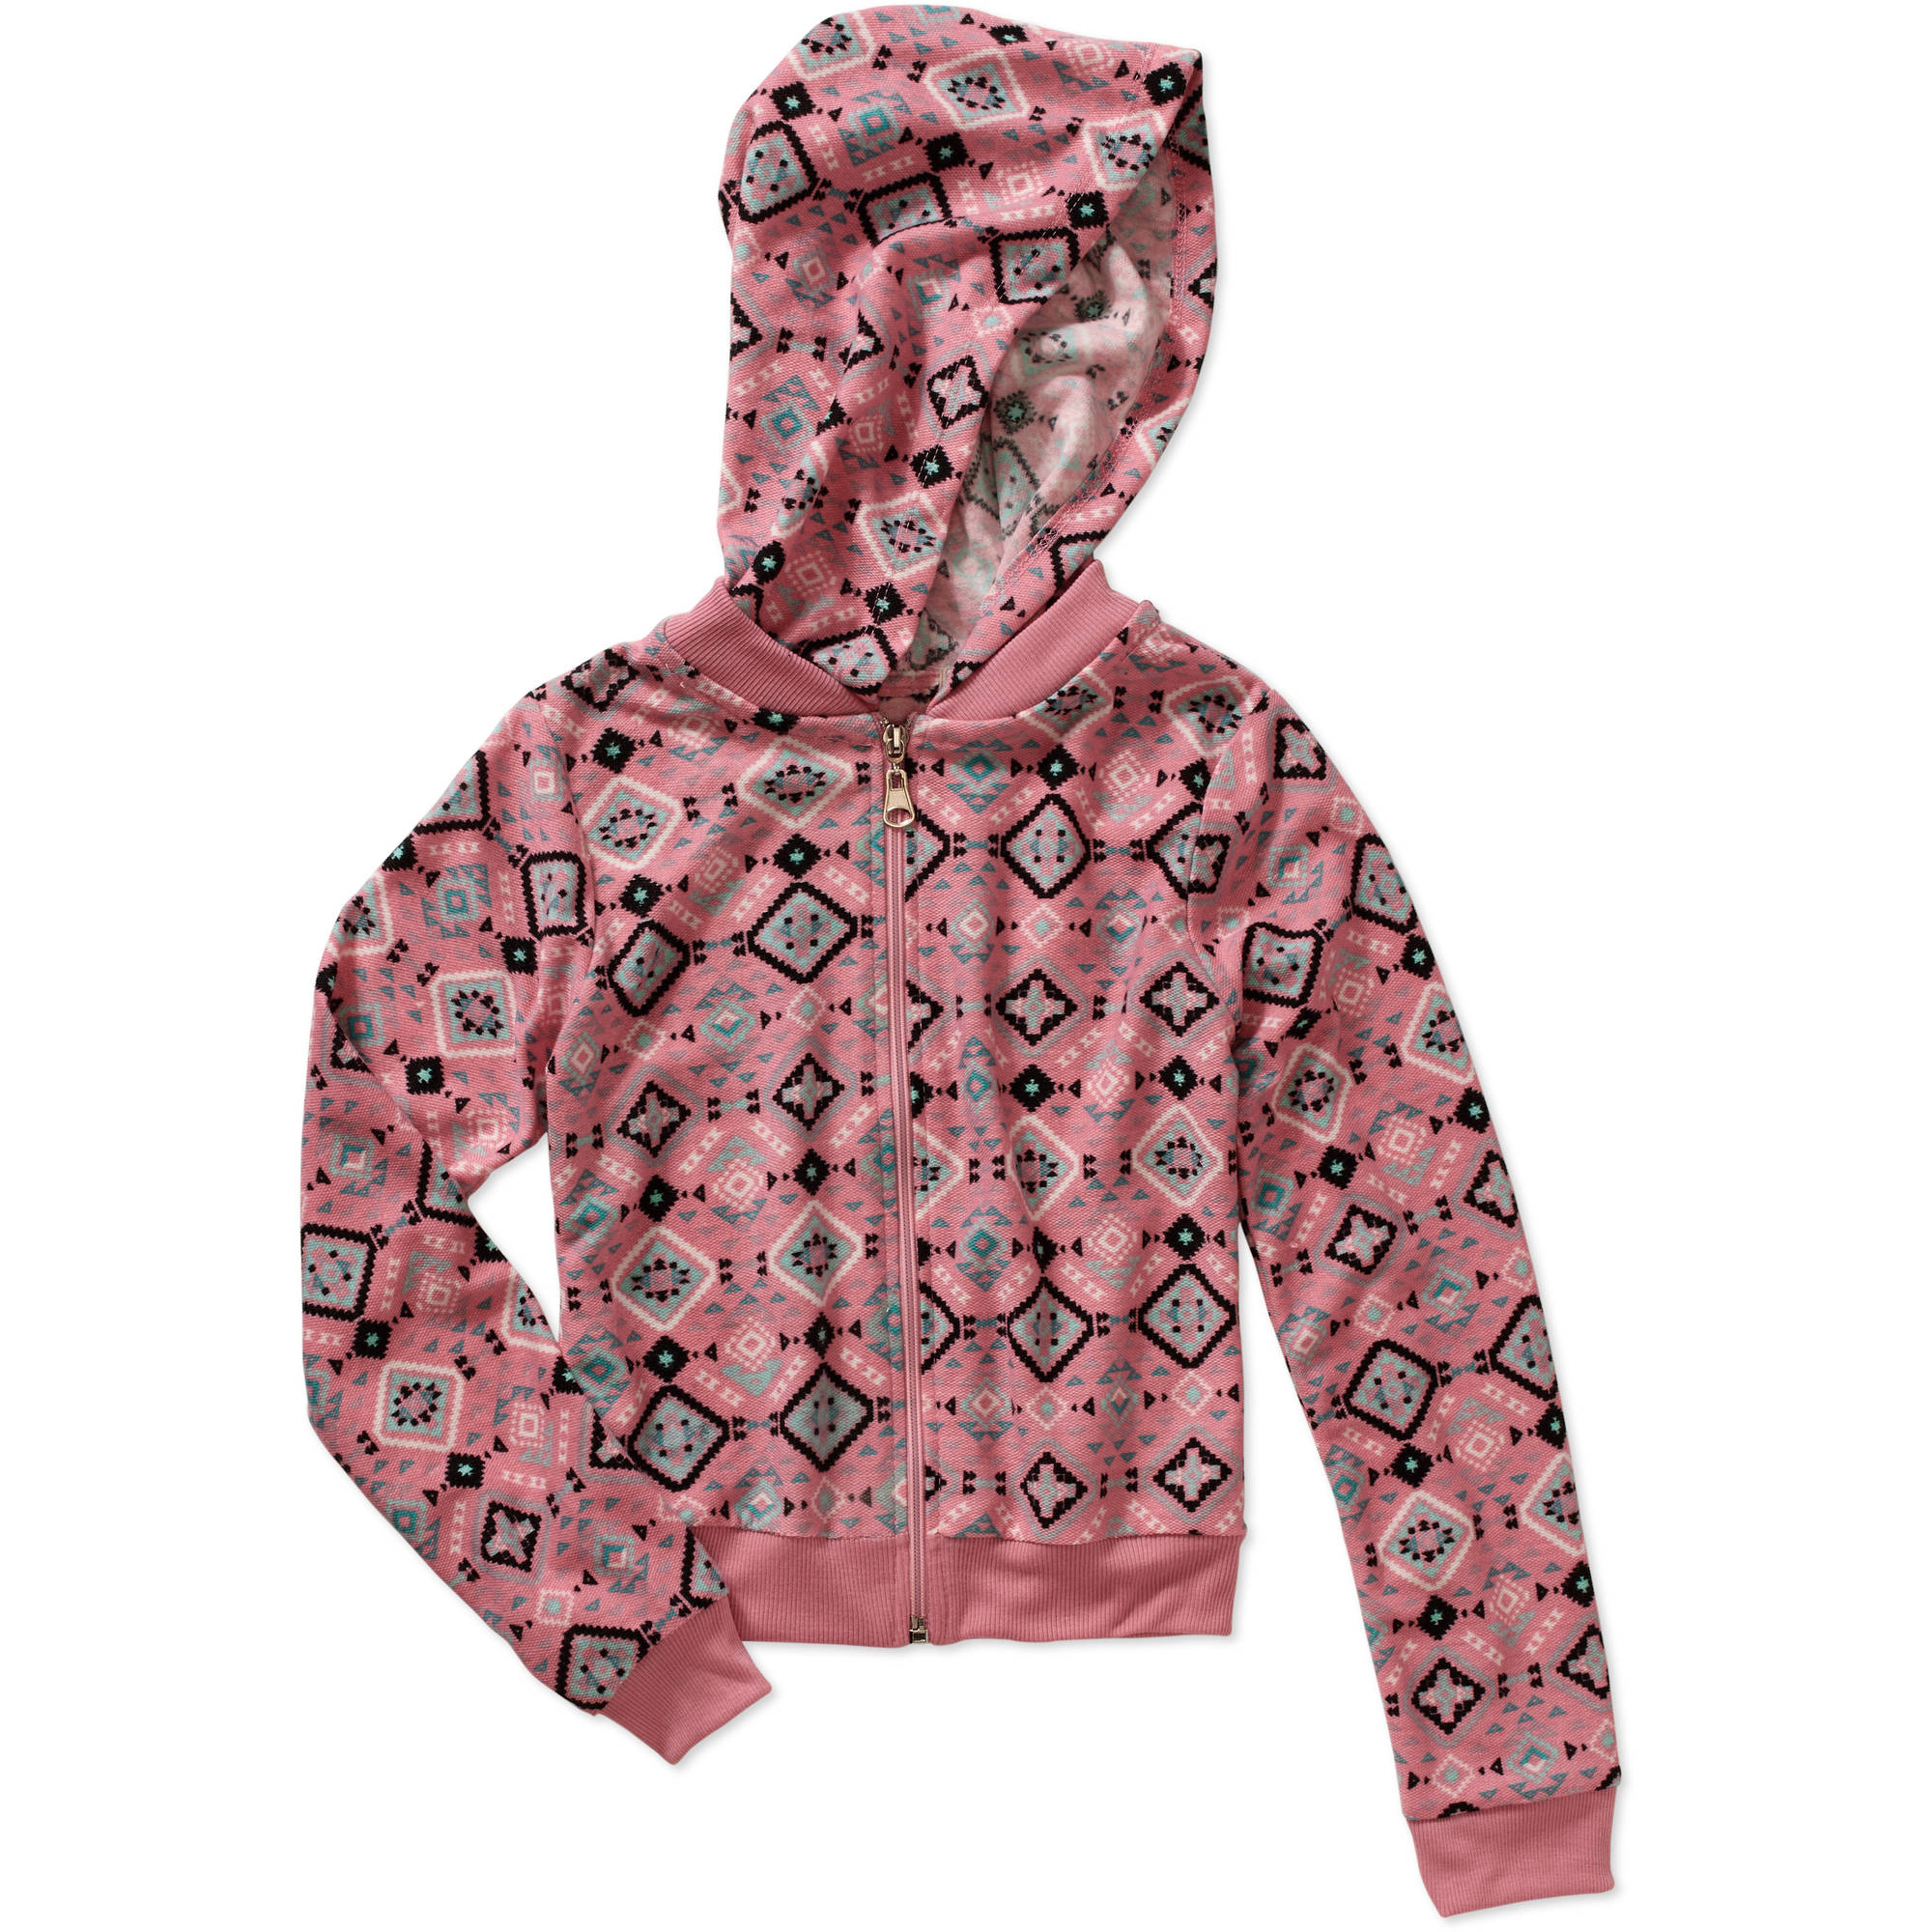 One Step Up Girls' Aztec Boutique Printed Hooded Zip-Up Loop Terry Jacket